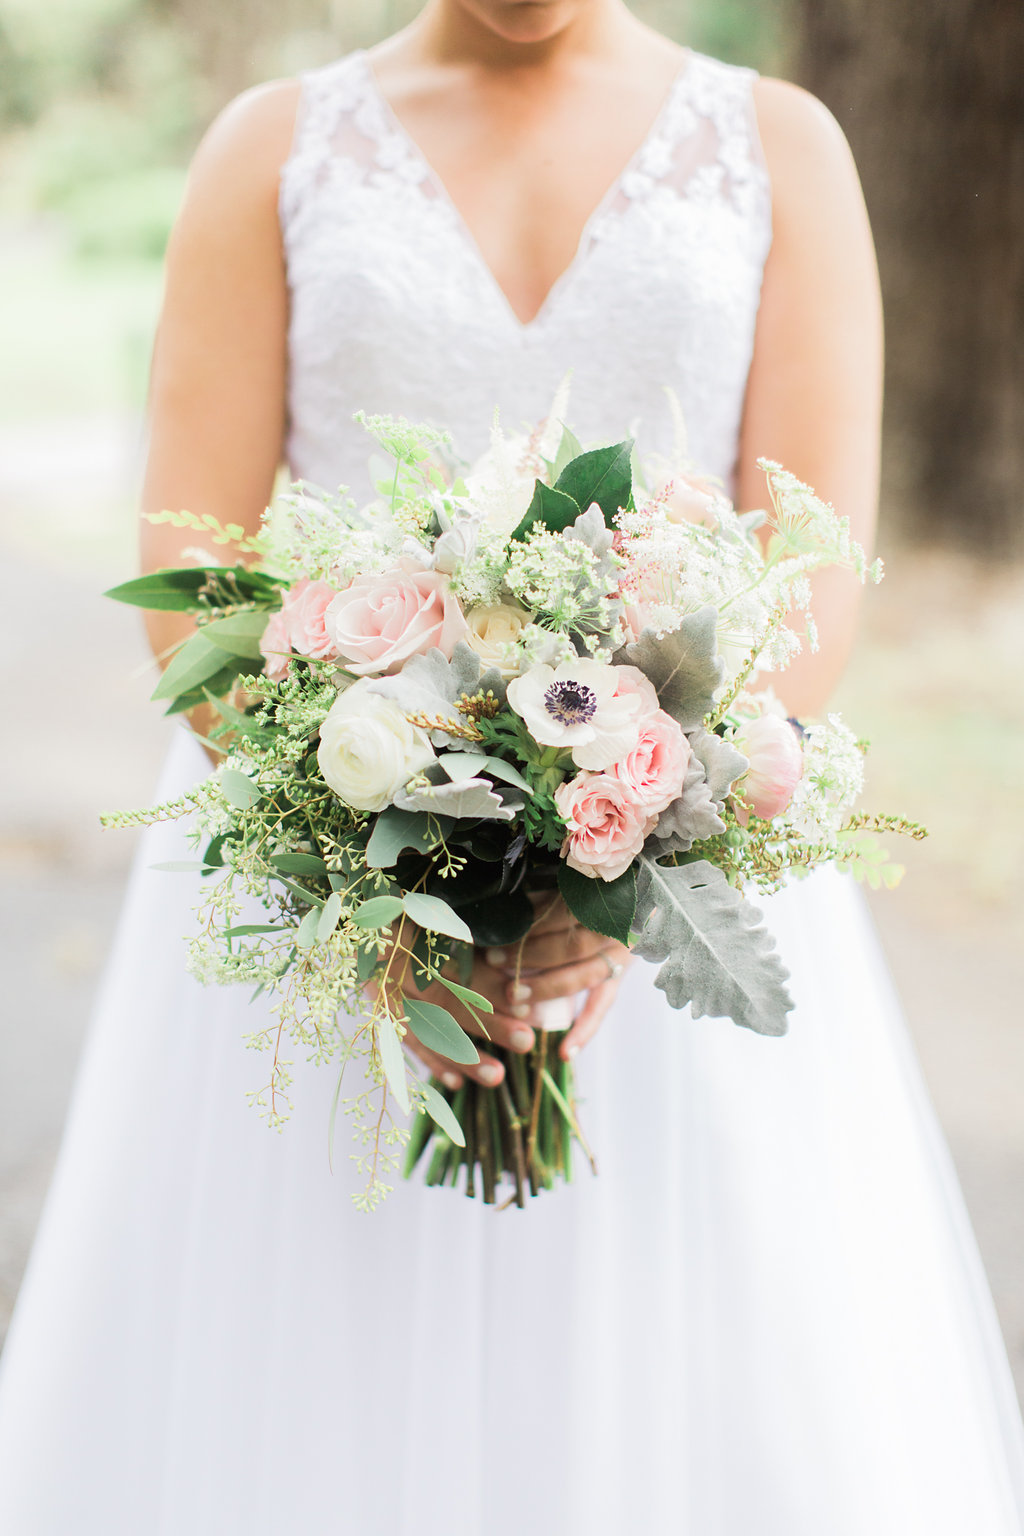 the-happy-bloom-photography-ivory-and-beau-wedding-planning-ivory-and-beau-bridal-boutique-whitfield-chapel-wedding-10-downing-wedding-savannah-wedding-historic-savannah-wedding-savannah-wedding-planner-savannah-weddings-a-to-zinnias-18.jpg